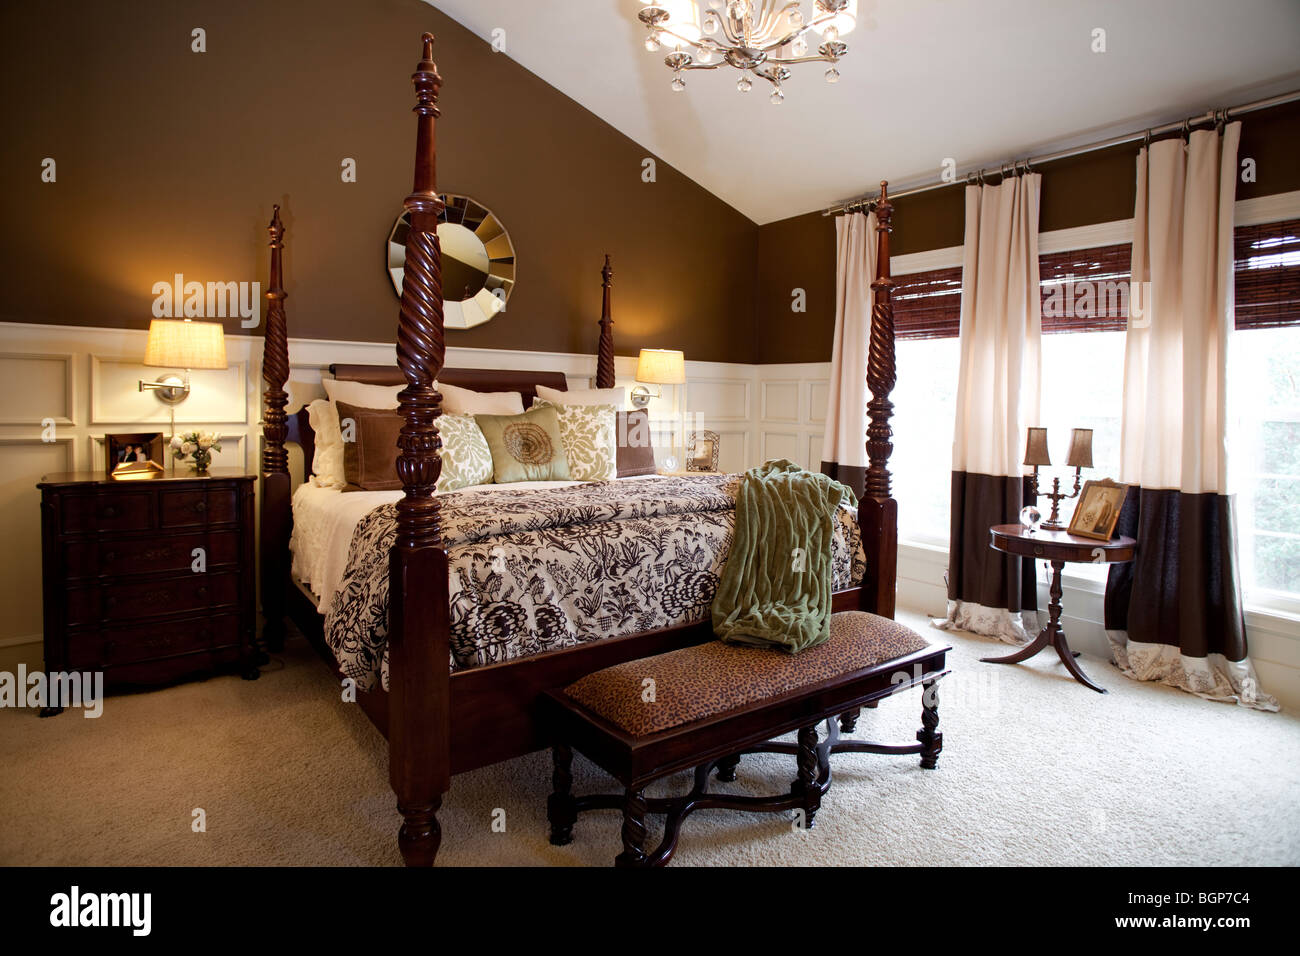 King Size Four Poster Bed Images Galleries With A Bite